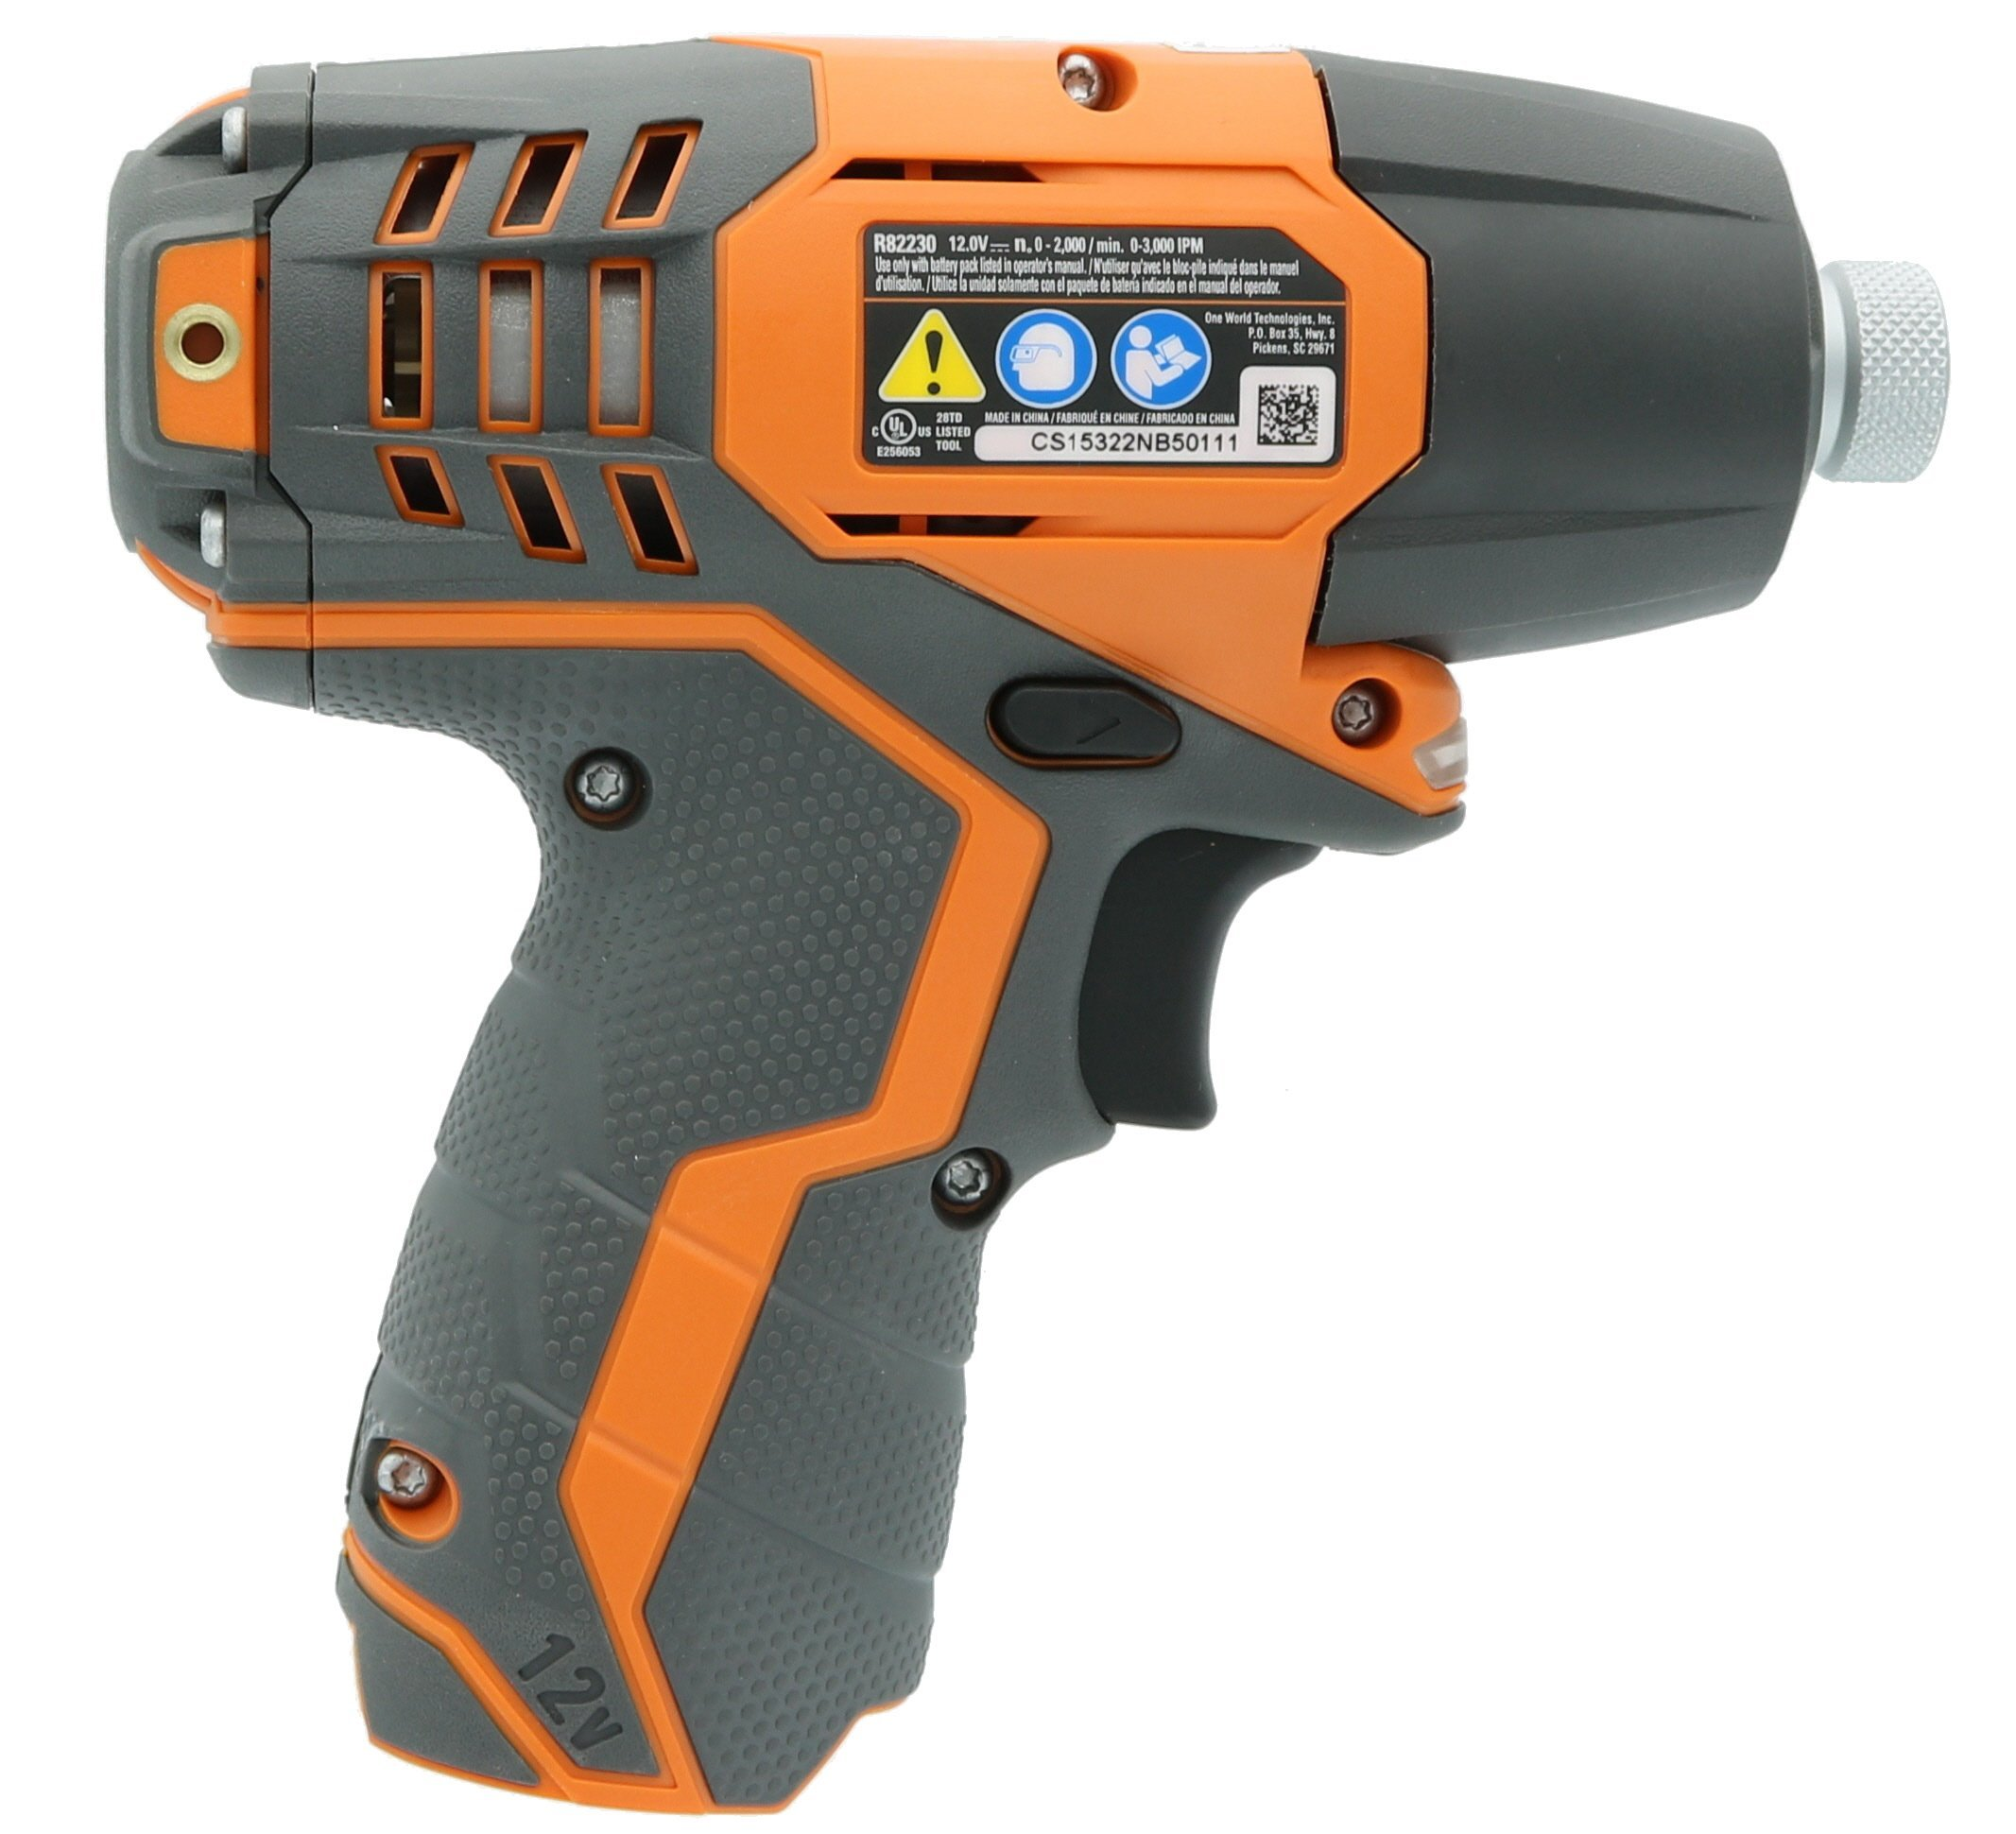 Ridgid R82230N 1/4 Inch 12 Volt Lithium Ion 1,100 In. Lbs. Impact Driver (Battery Not Included, Power Tool Only) (Certified Refurbished) by Ridgid (Image #3)